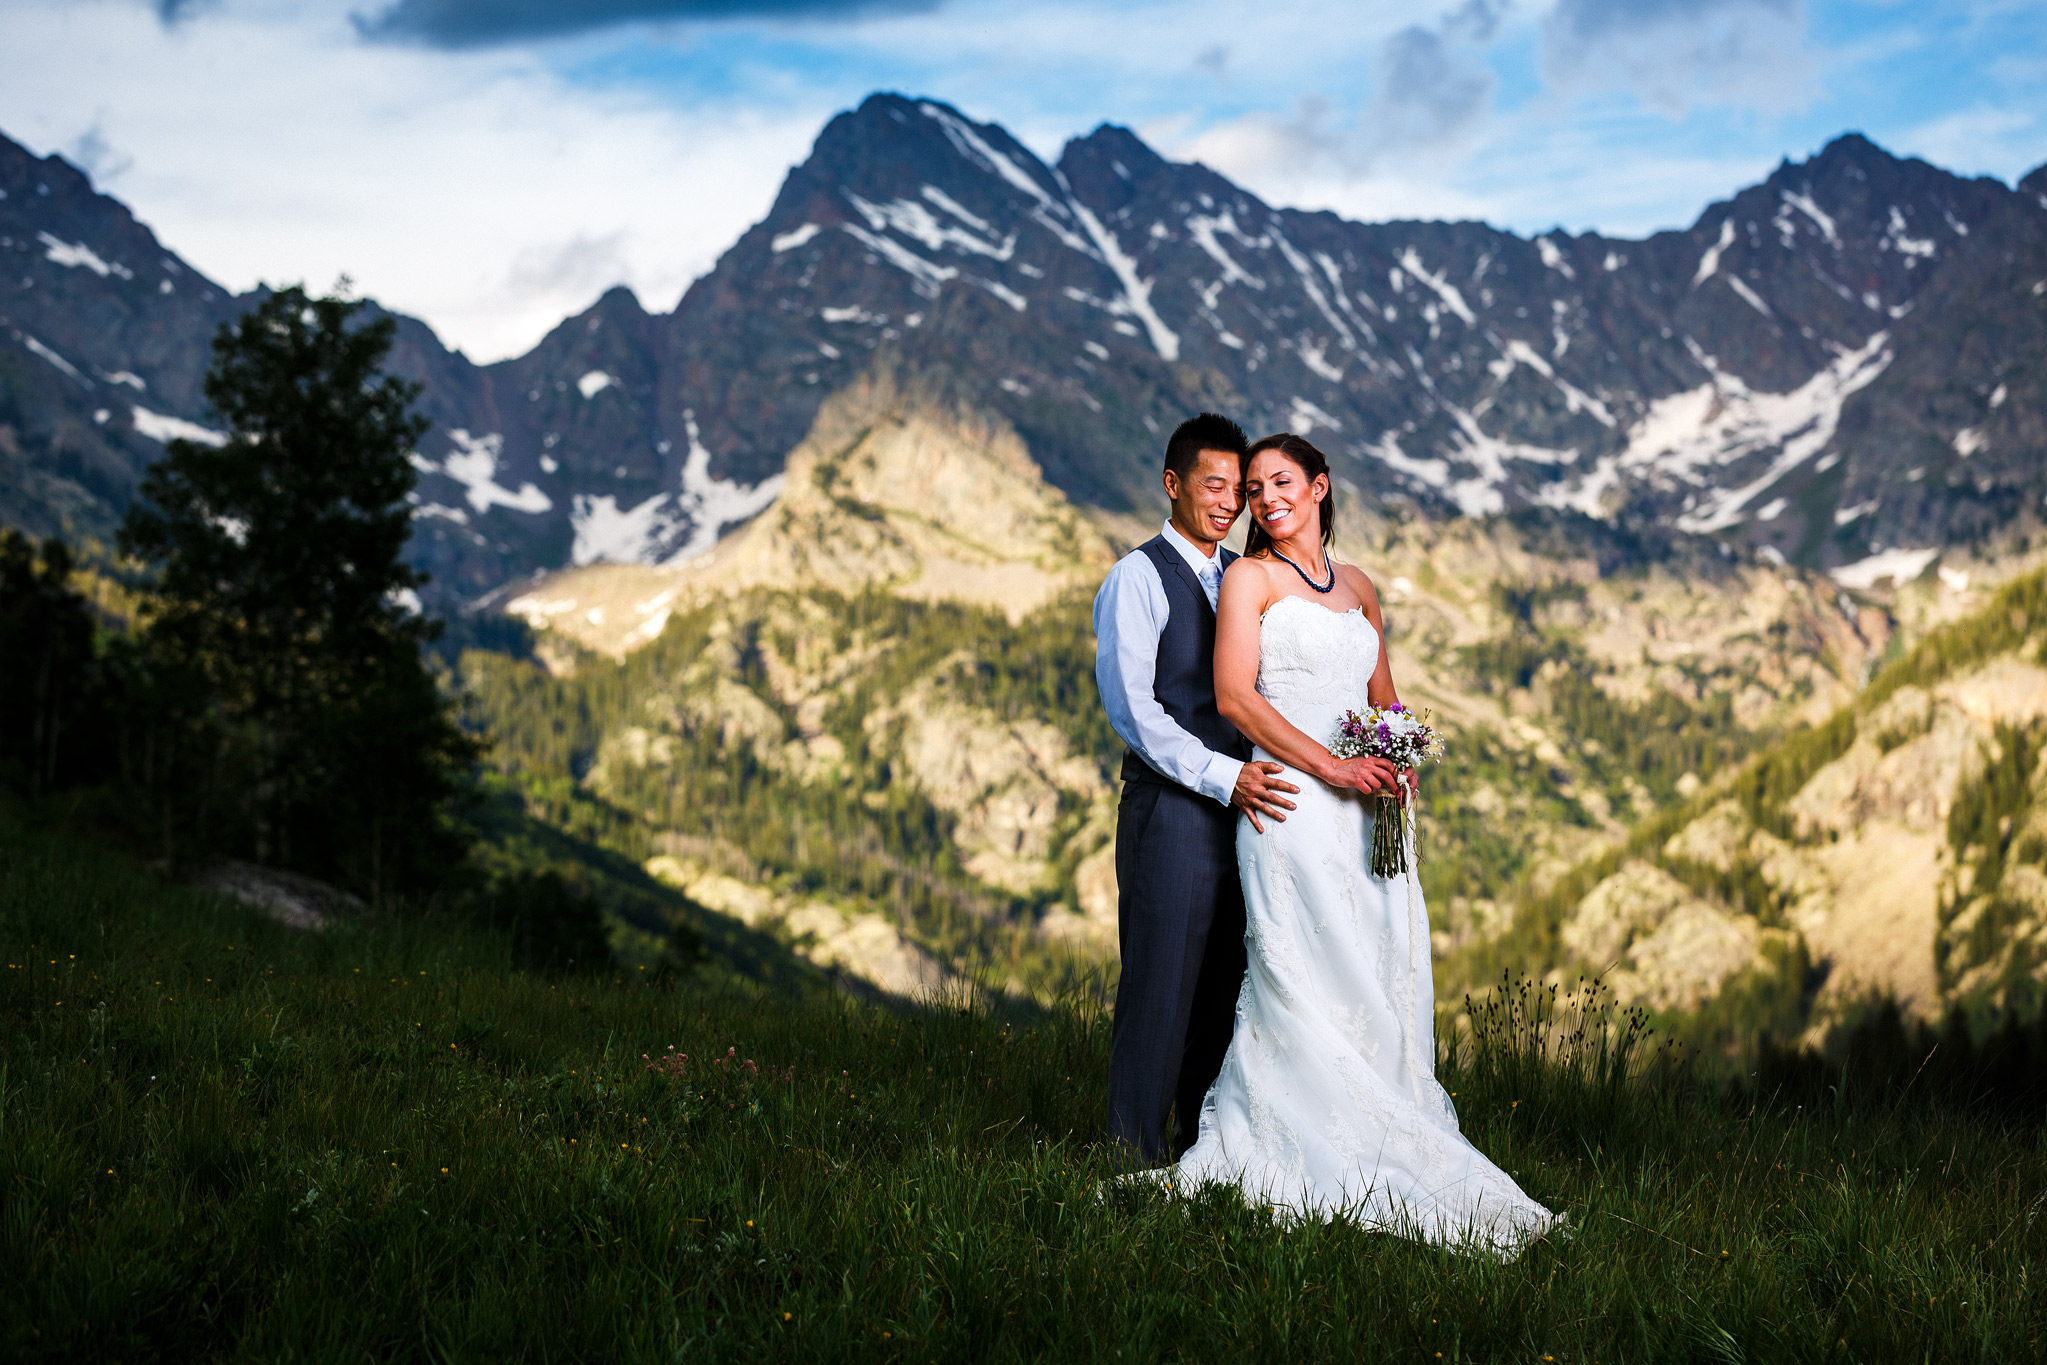 Mountain wedding venues top colorado mountain wedding for Best colorado mountain wedding venues